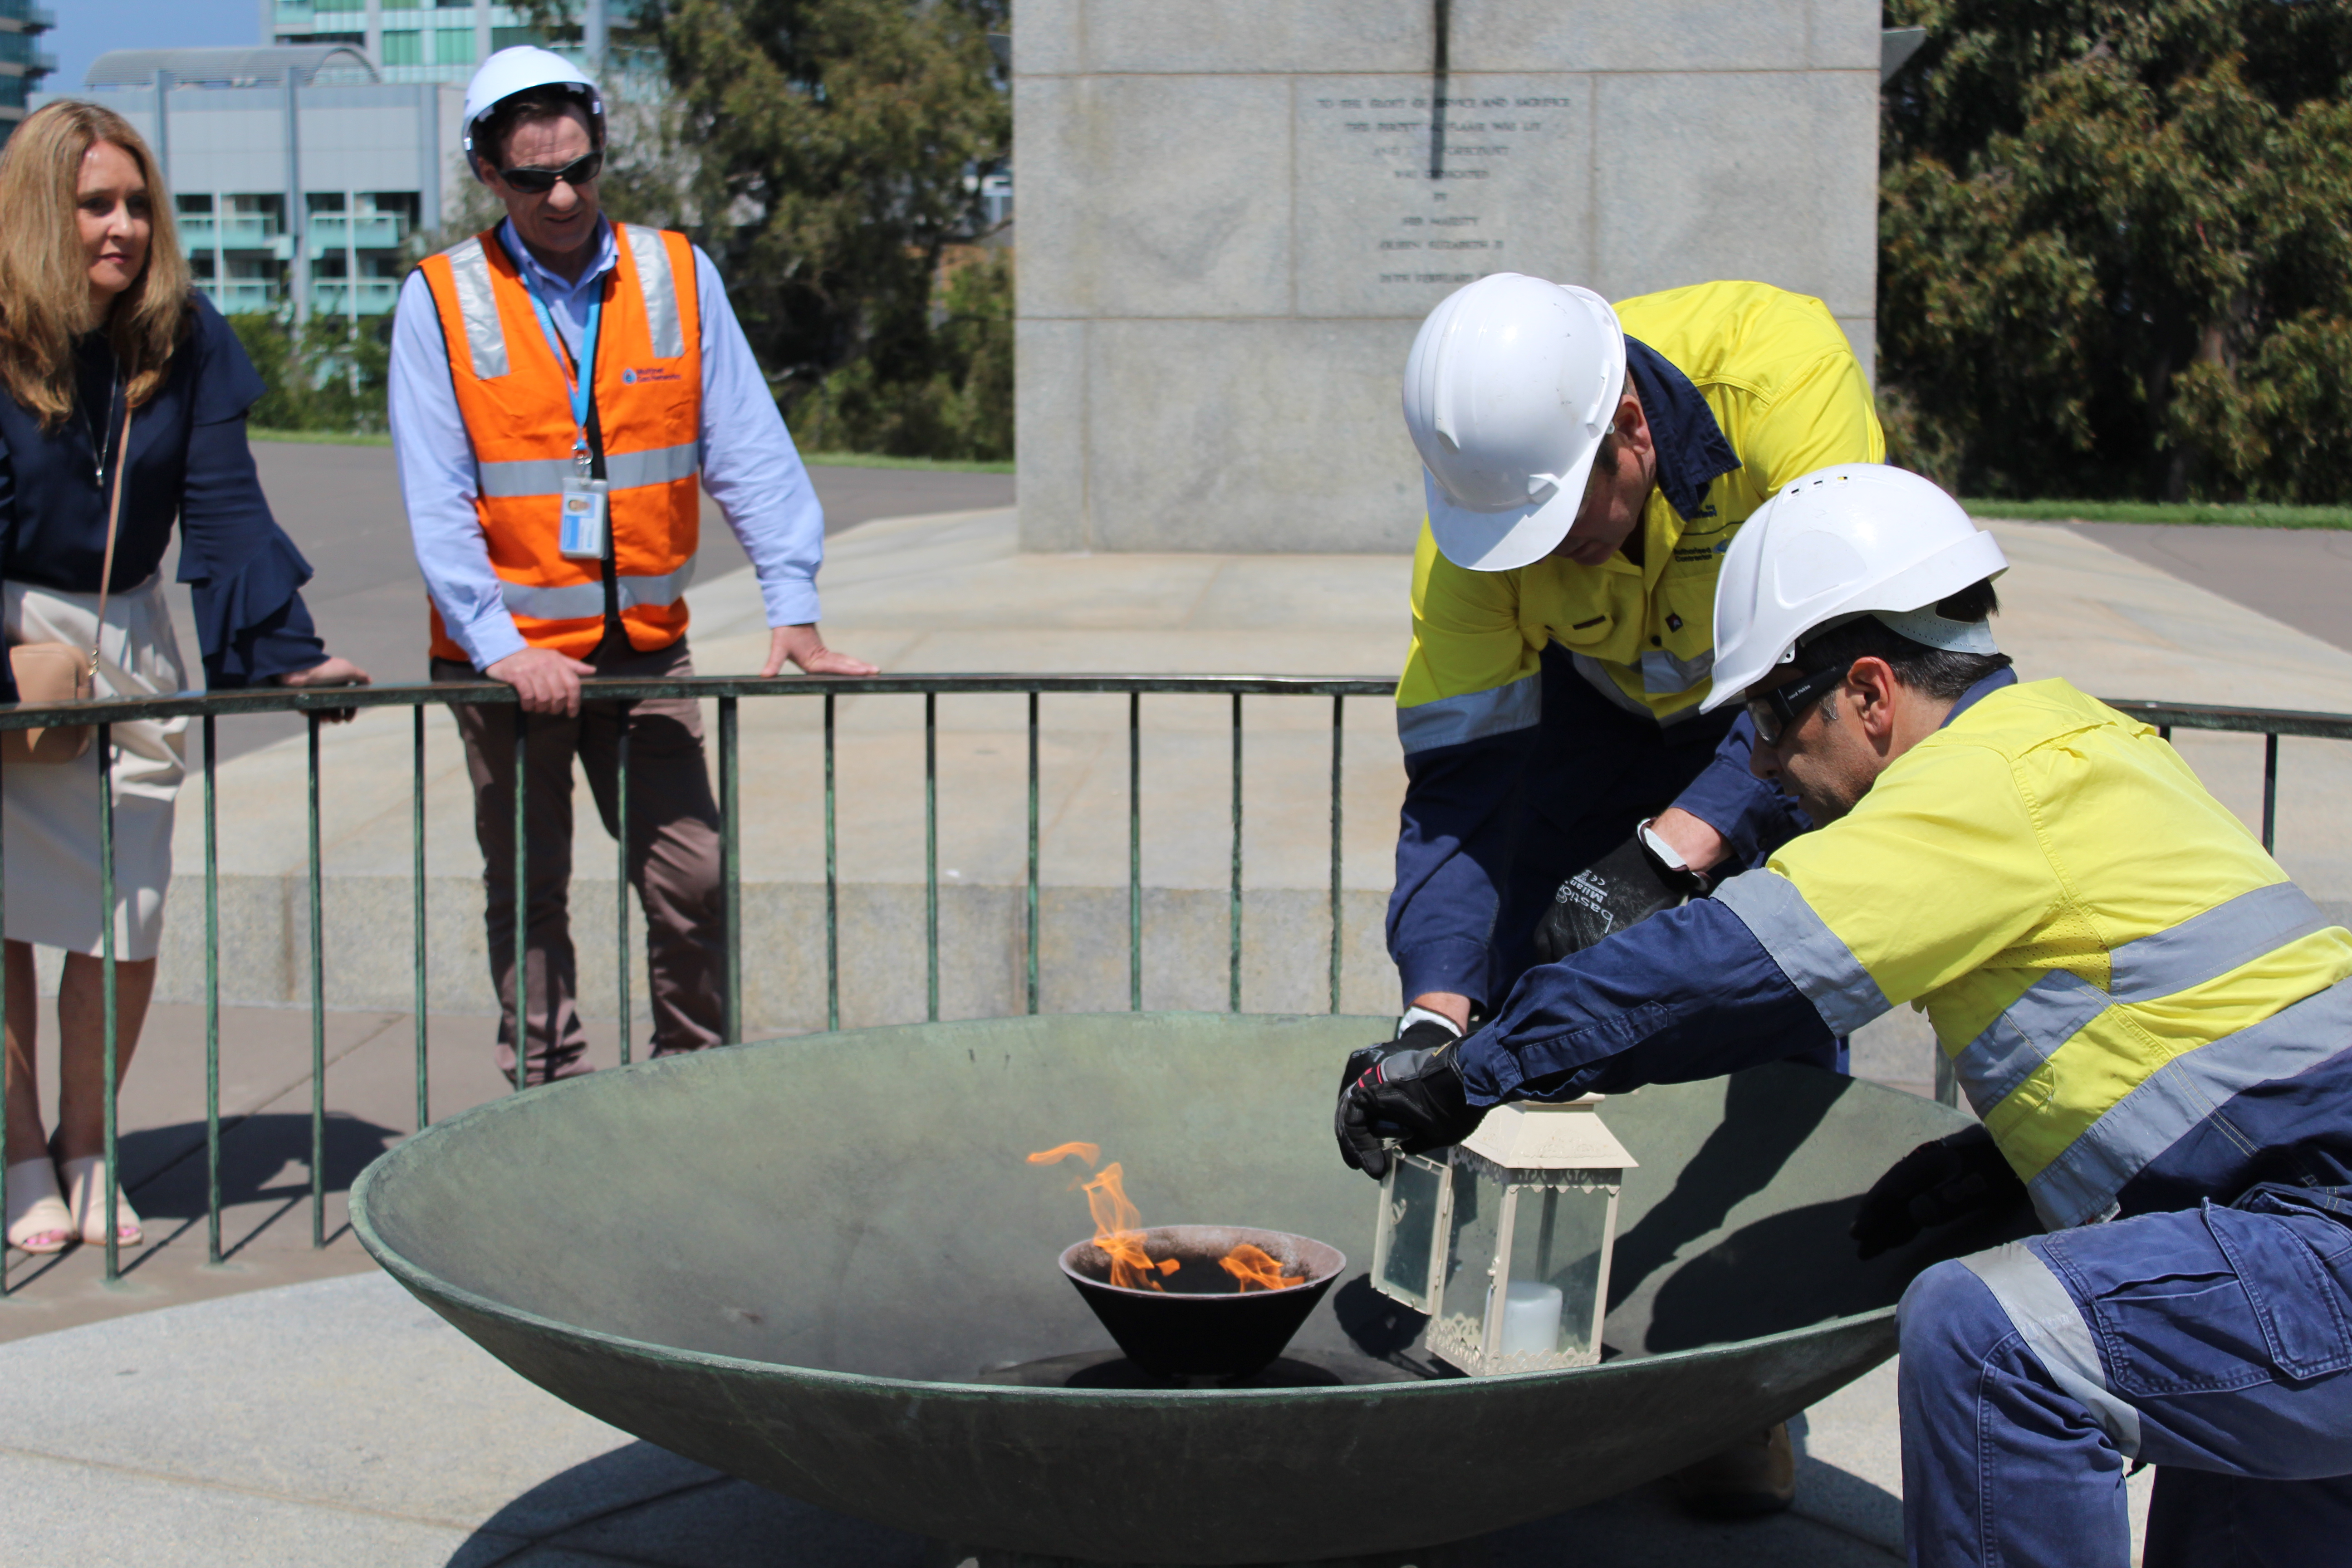 Workers keep the flame alive inside a lantern during installation of the new burner.